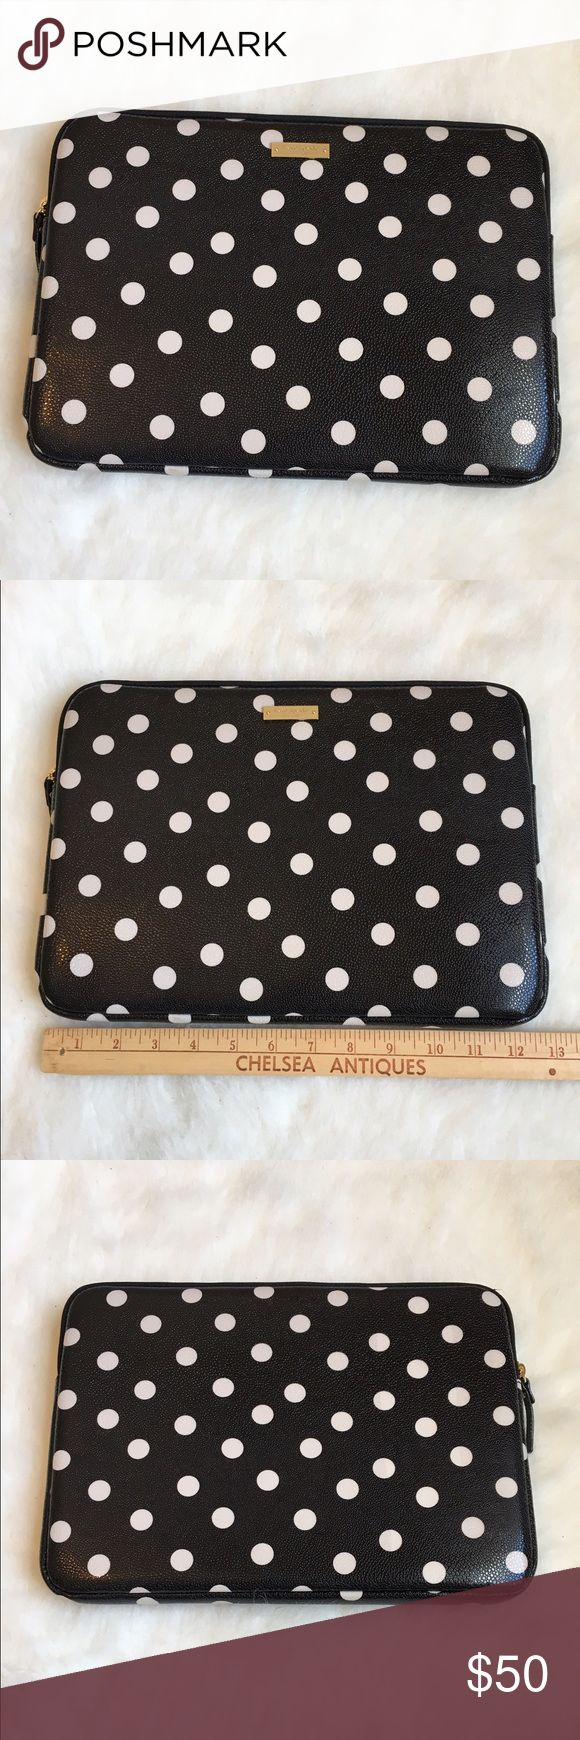 "Kate ♠️ 11"" laptop/Microsoft sleeve This is a Kate Spade laptop/tablet sleeve. It is made for a Microsoft pro 3 and my 11"" also fit inside. (As seen in picture) It is protective against impact and has an easy cleanable outside. 💞BRAND NEW NEVER USED💞🚫NO TRADES🚫 kate spade Accessories Laptop Cases"